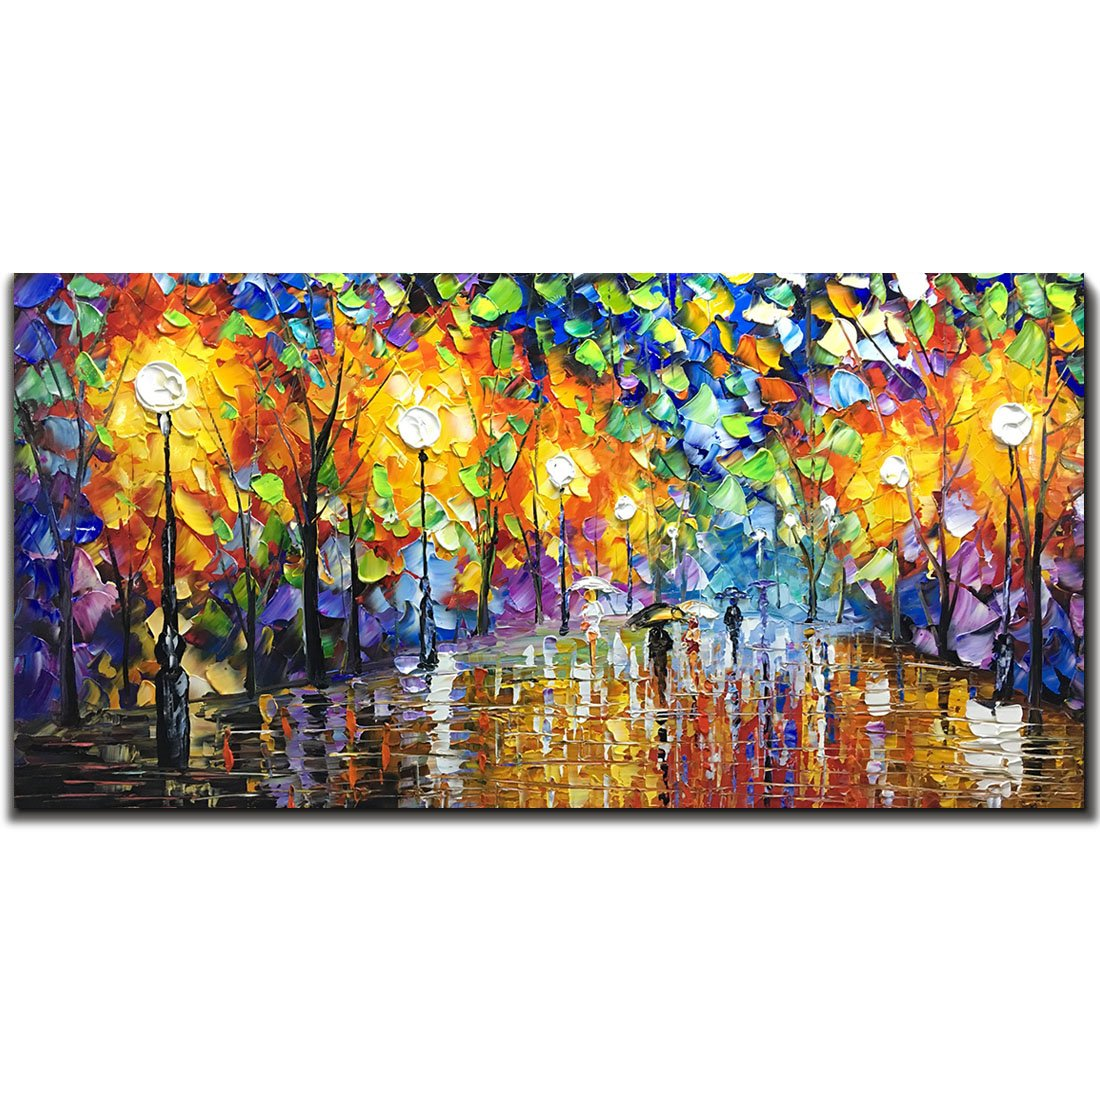 V-inspire Art, 24X48 Inch Oil Paintings on Canvas Art 100% Hand-Painted Abstract Artwork Night Rainy Street Wall Art For livingroom Bedroom Dinning Room Decorative Pictures Home Decor